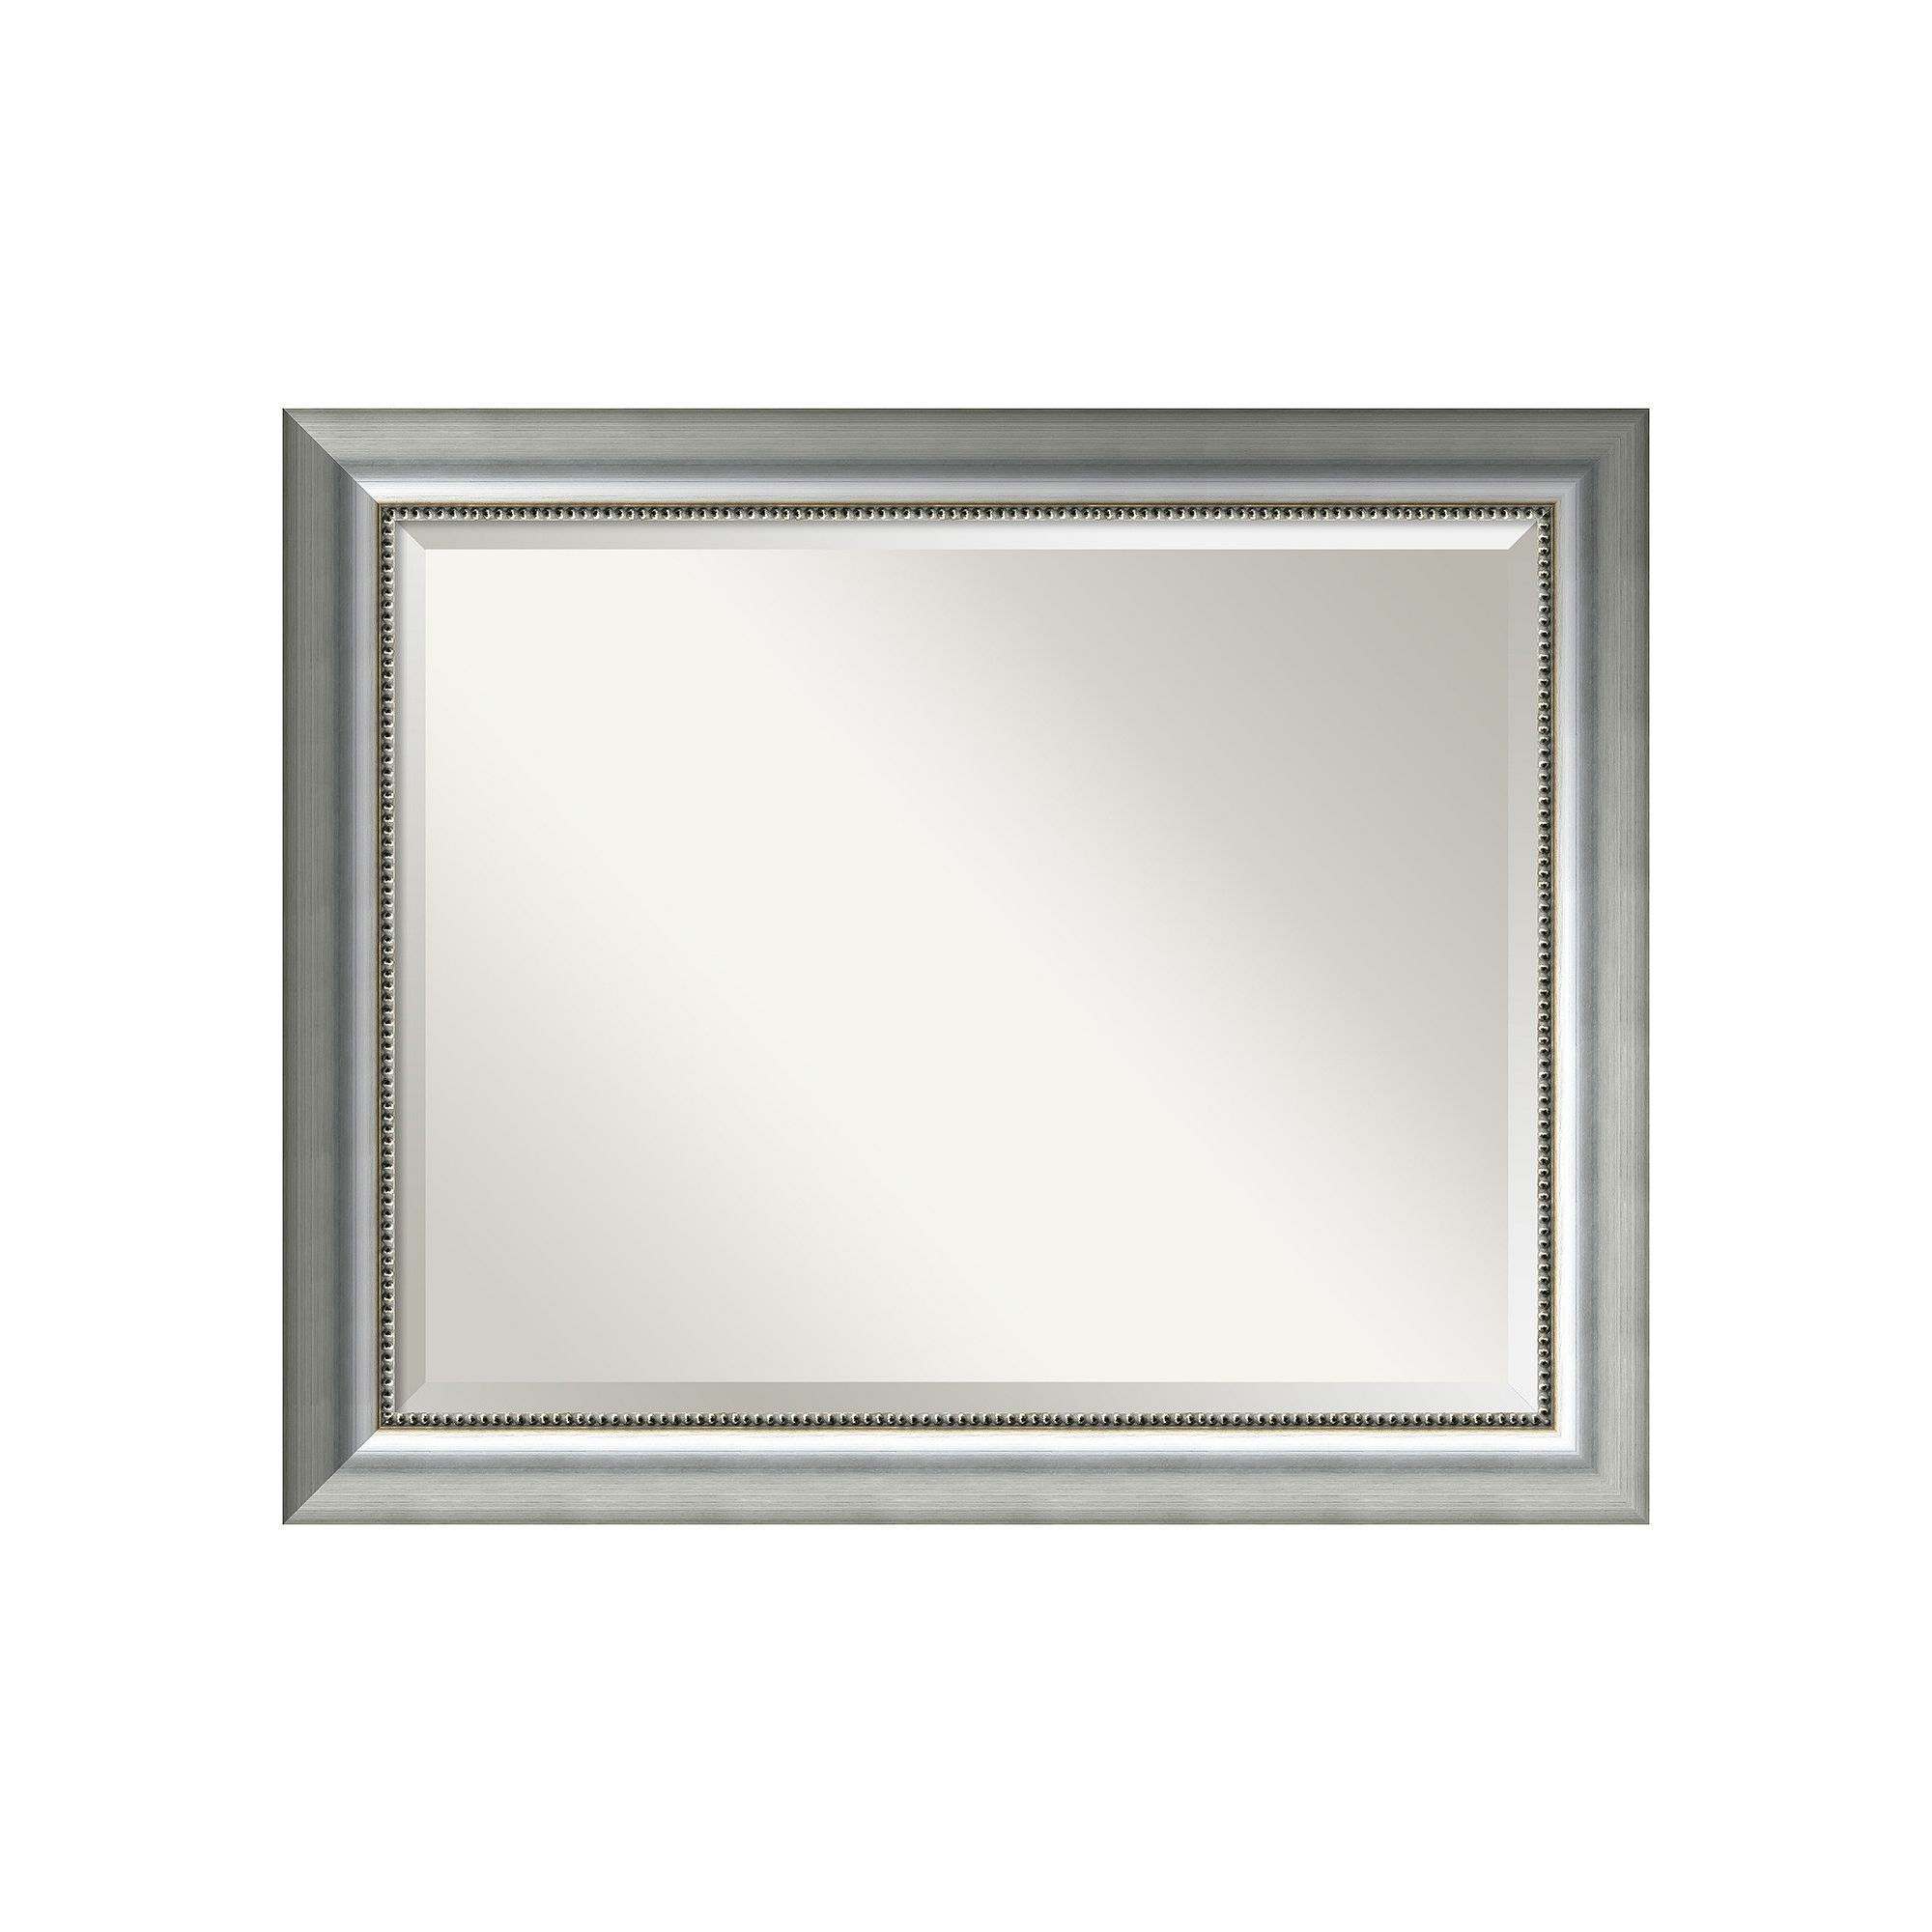 Vegas Small Burnished Silver Tone Traditional Wood Wall Mirror Silver Mirror Design Wall